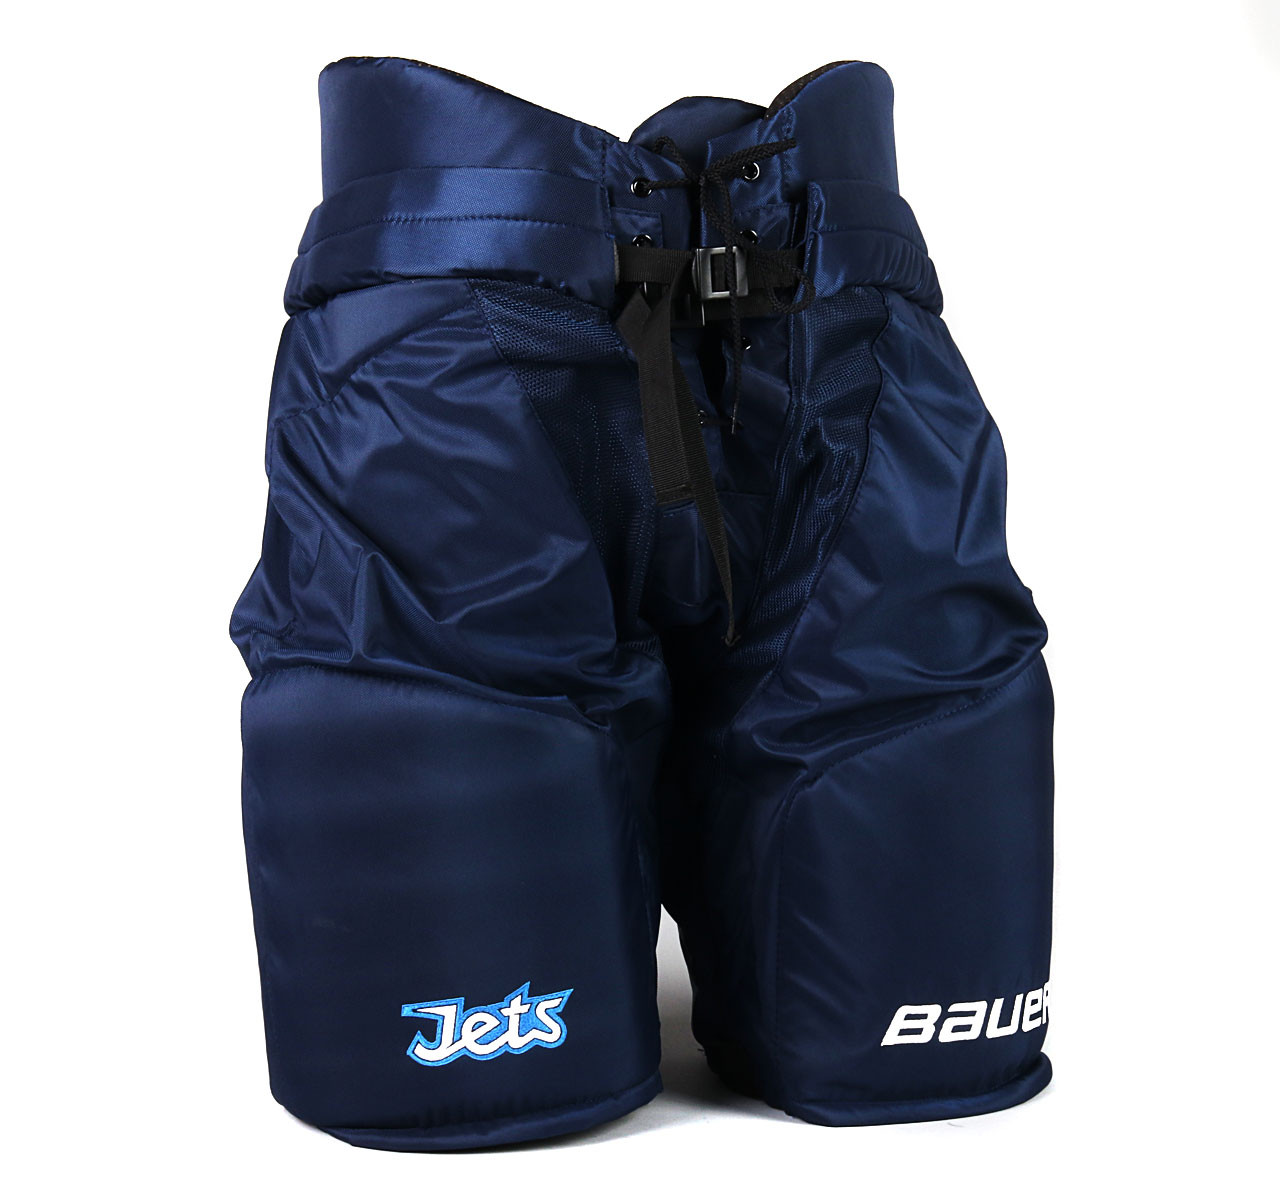 076f3639993 Size XL - Bauer Supreme Pants - Team Stock Winnipeg Jets - Pro Stock ...